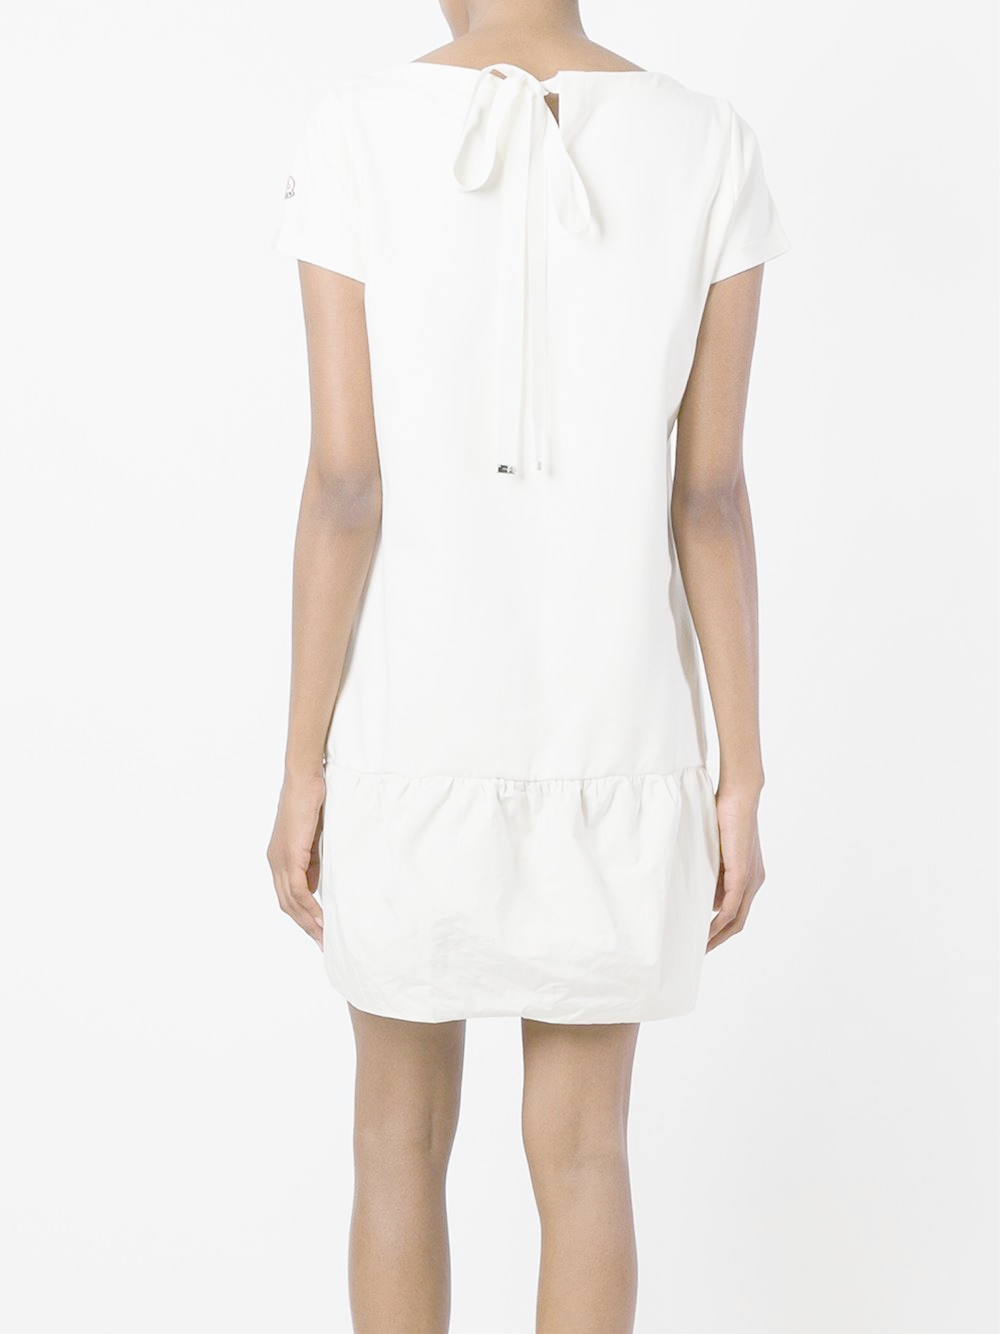 Moncler classic t shirt dress in white lyst for Classic white dress shirt